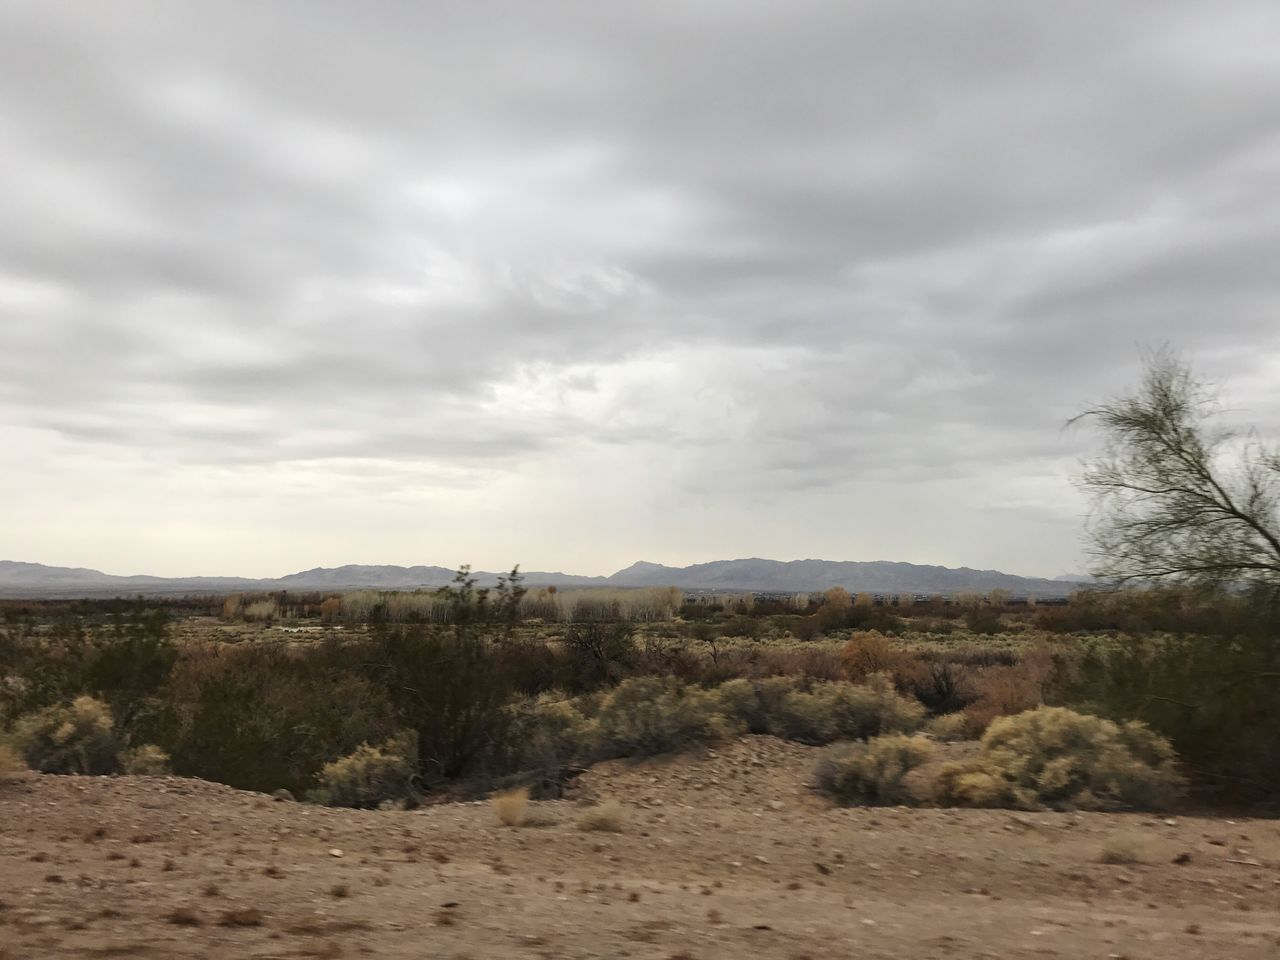 Landscape Nature Sky Tranquil Scene Tranquility Scenics Beauty In Nature Outdoors Non-urban Scene Tree No People Day Cloud - Sky Mountain Arid Climate Marshland  After The Fires Rainy Day Backroad Photography Peaceful Spaces